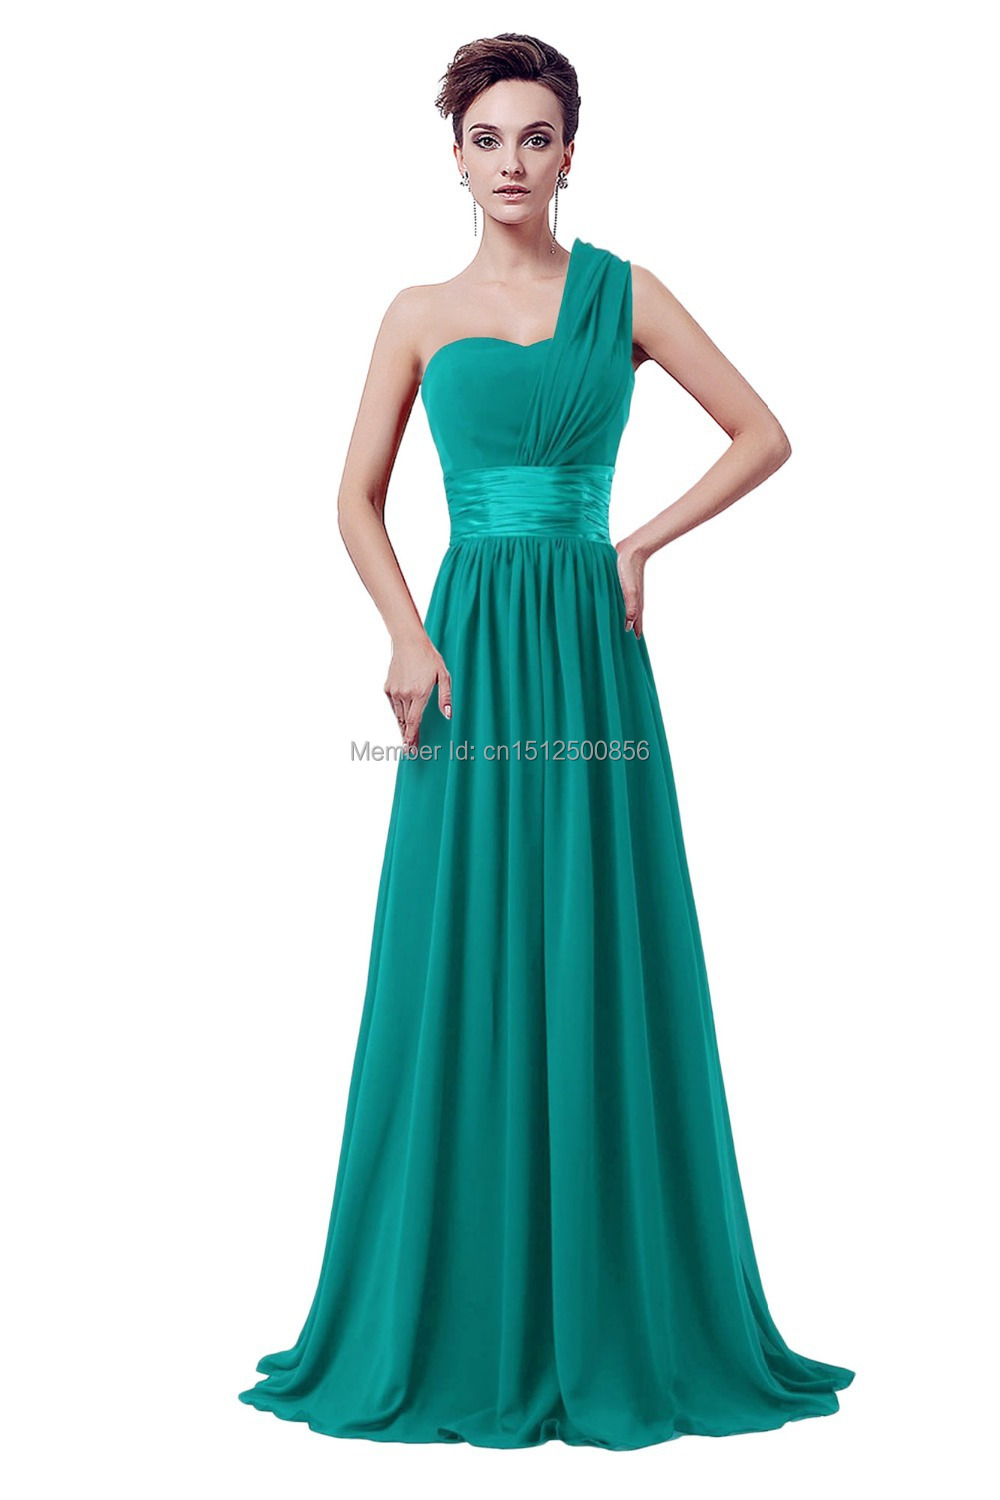 New arrival long emerald green bridesmaid dress wedding for Emerald green dress wedding guest